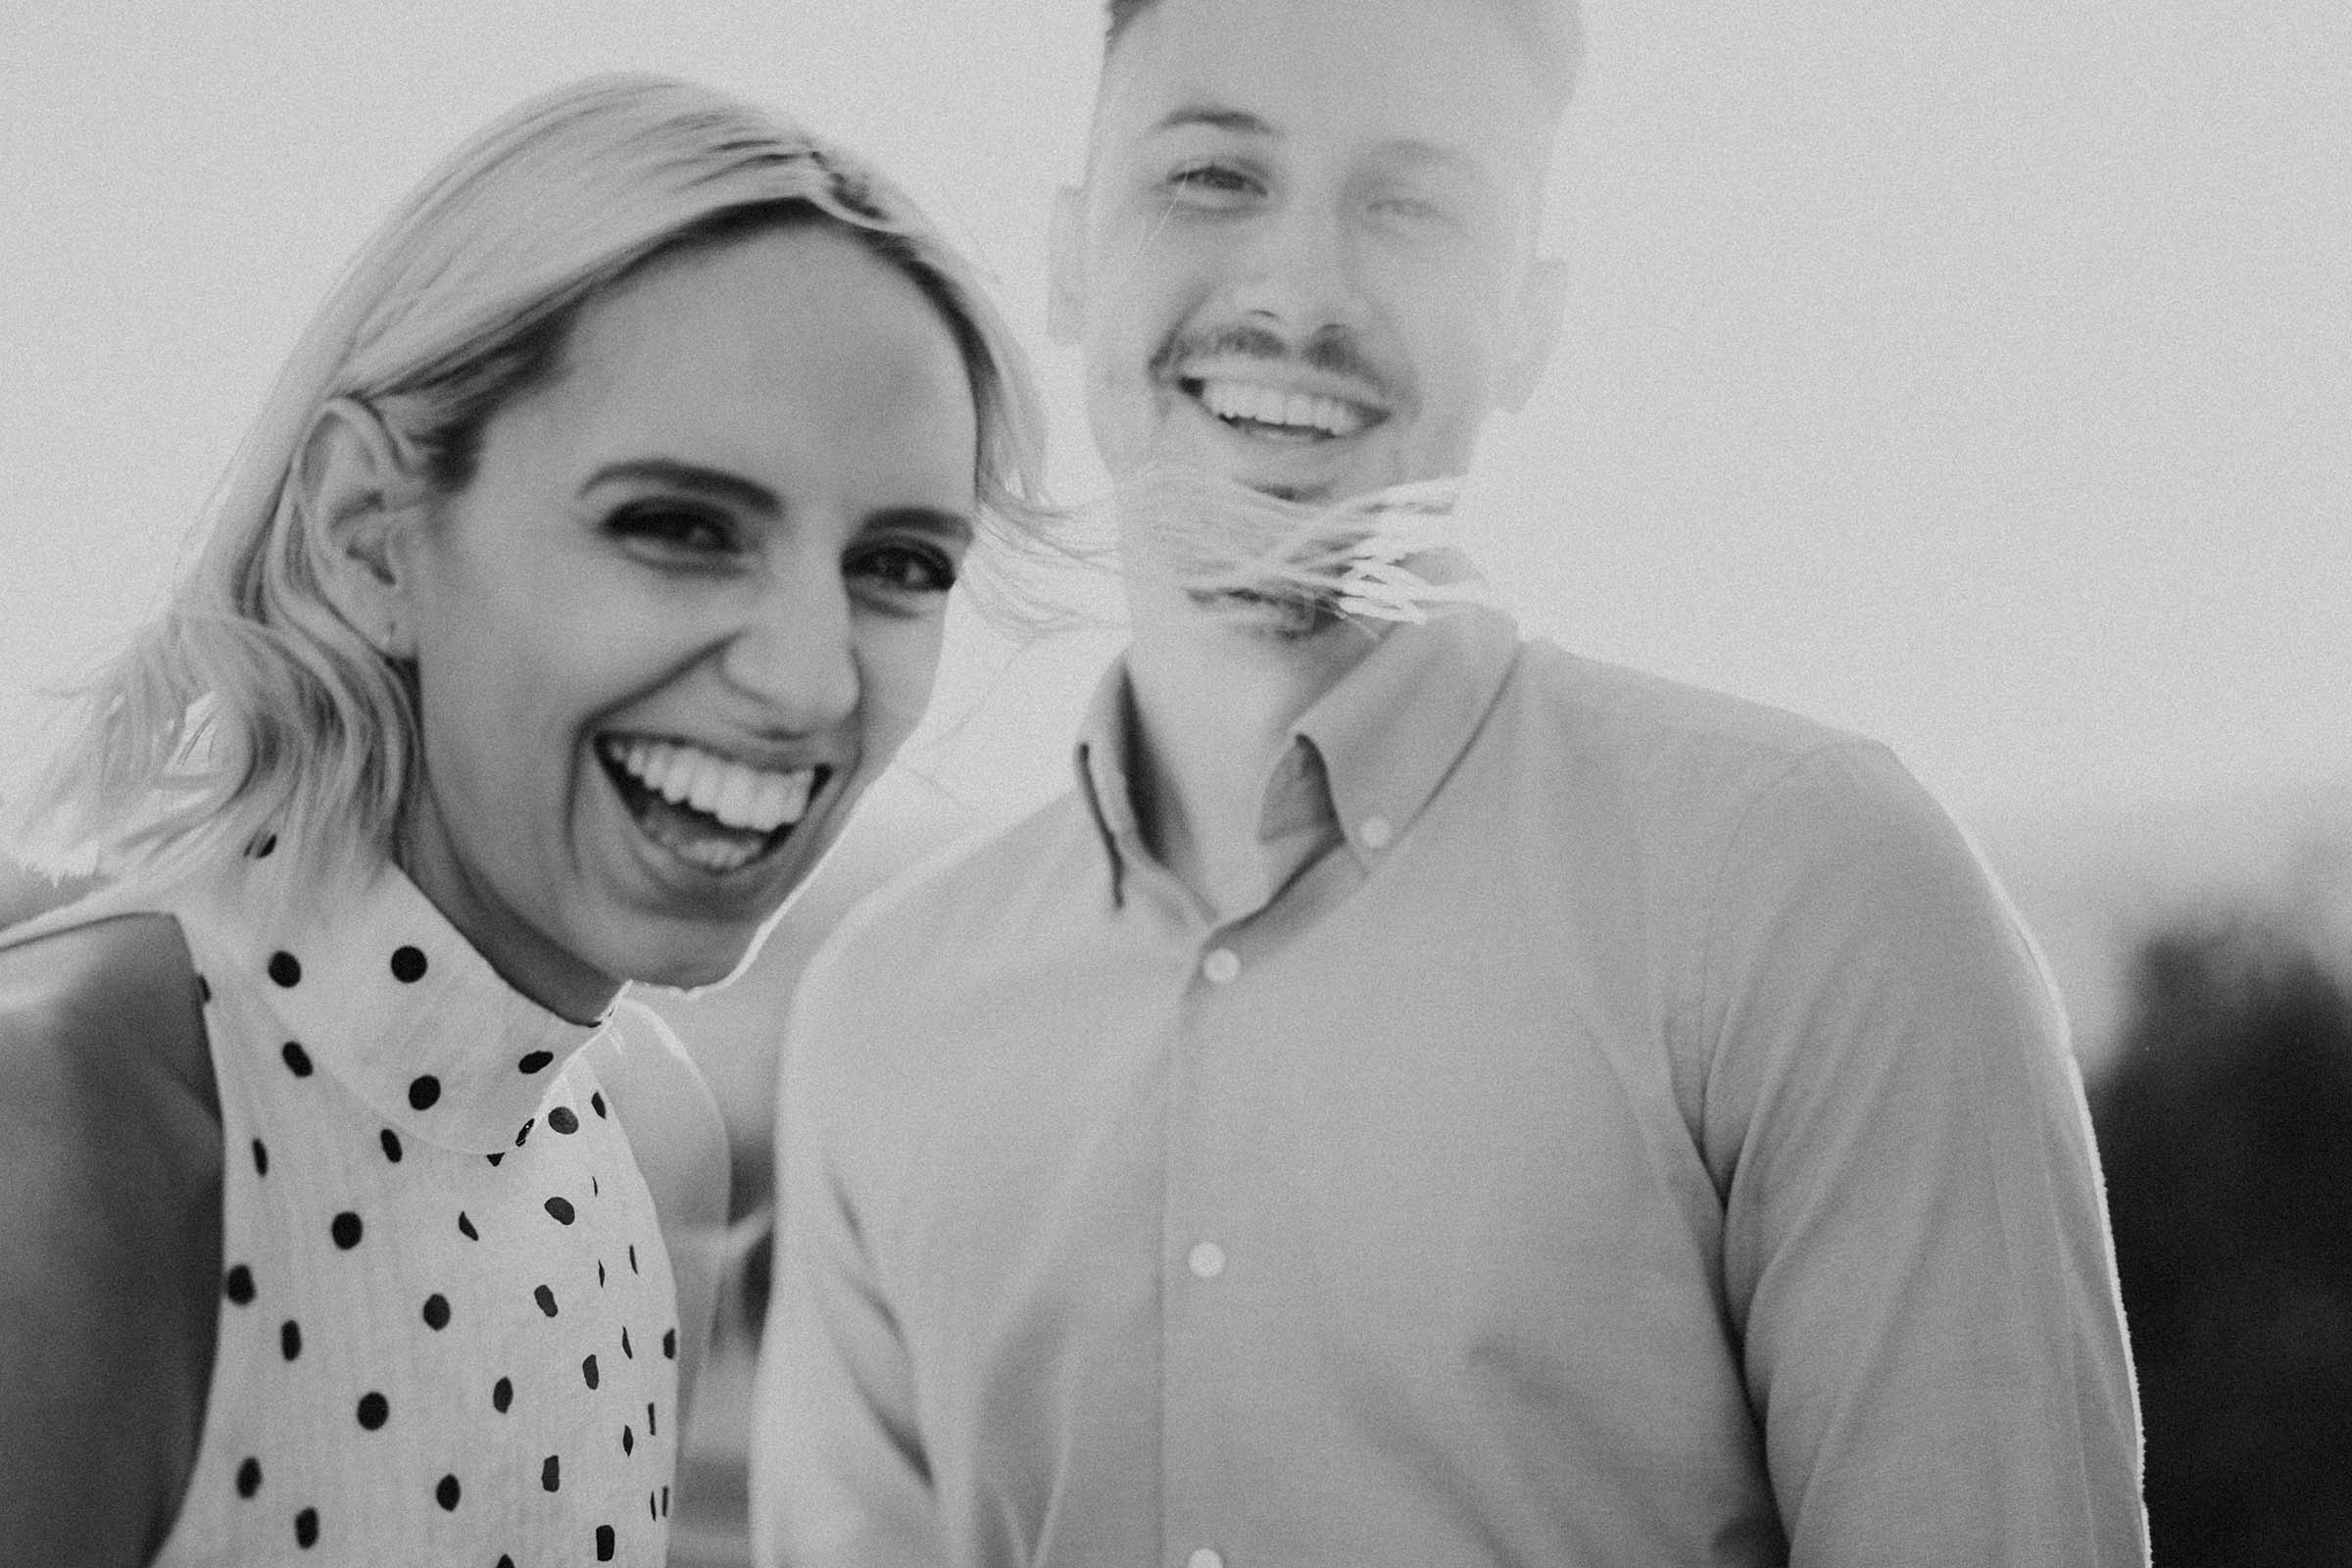 couple laughing in black and white